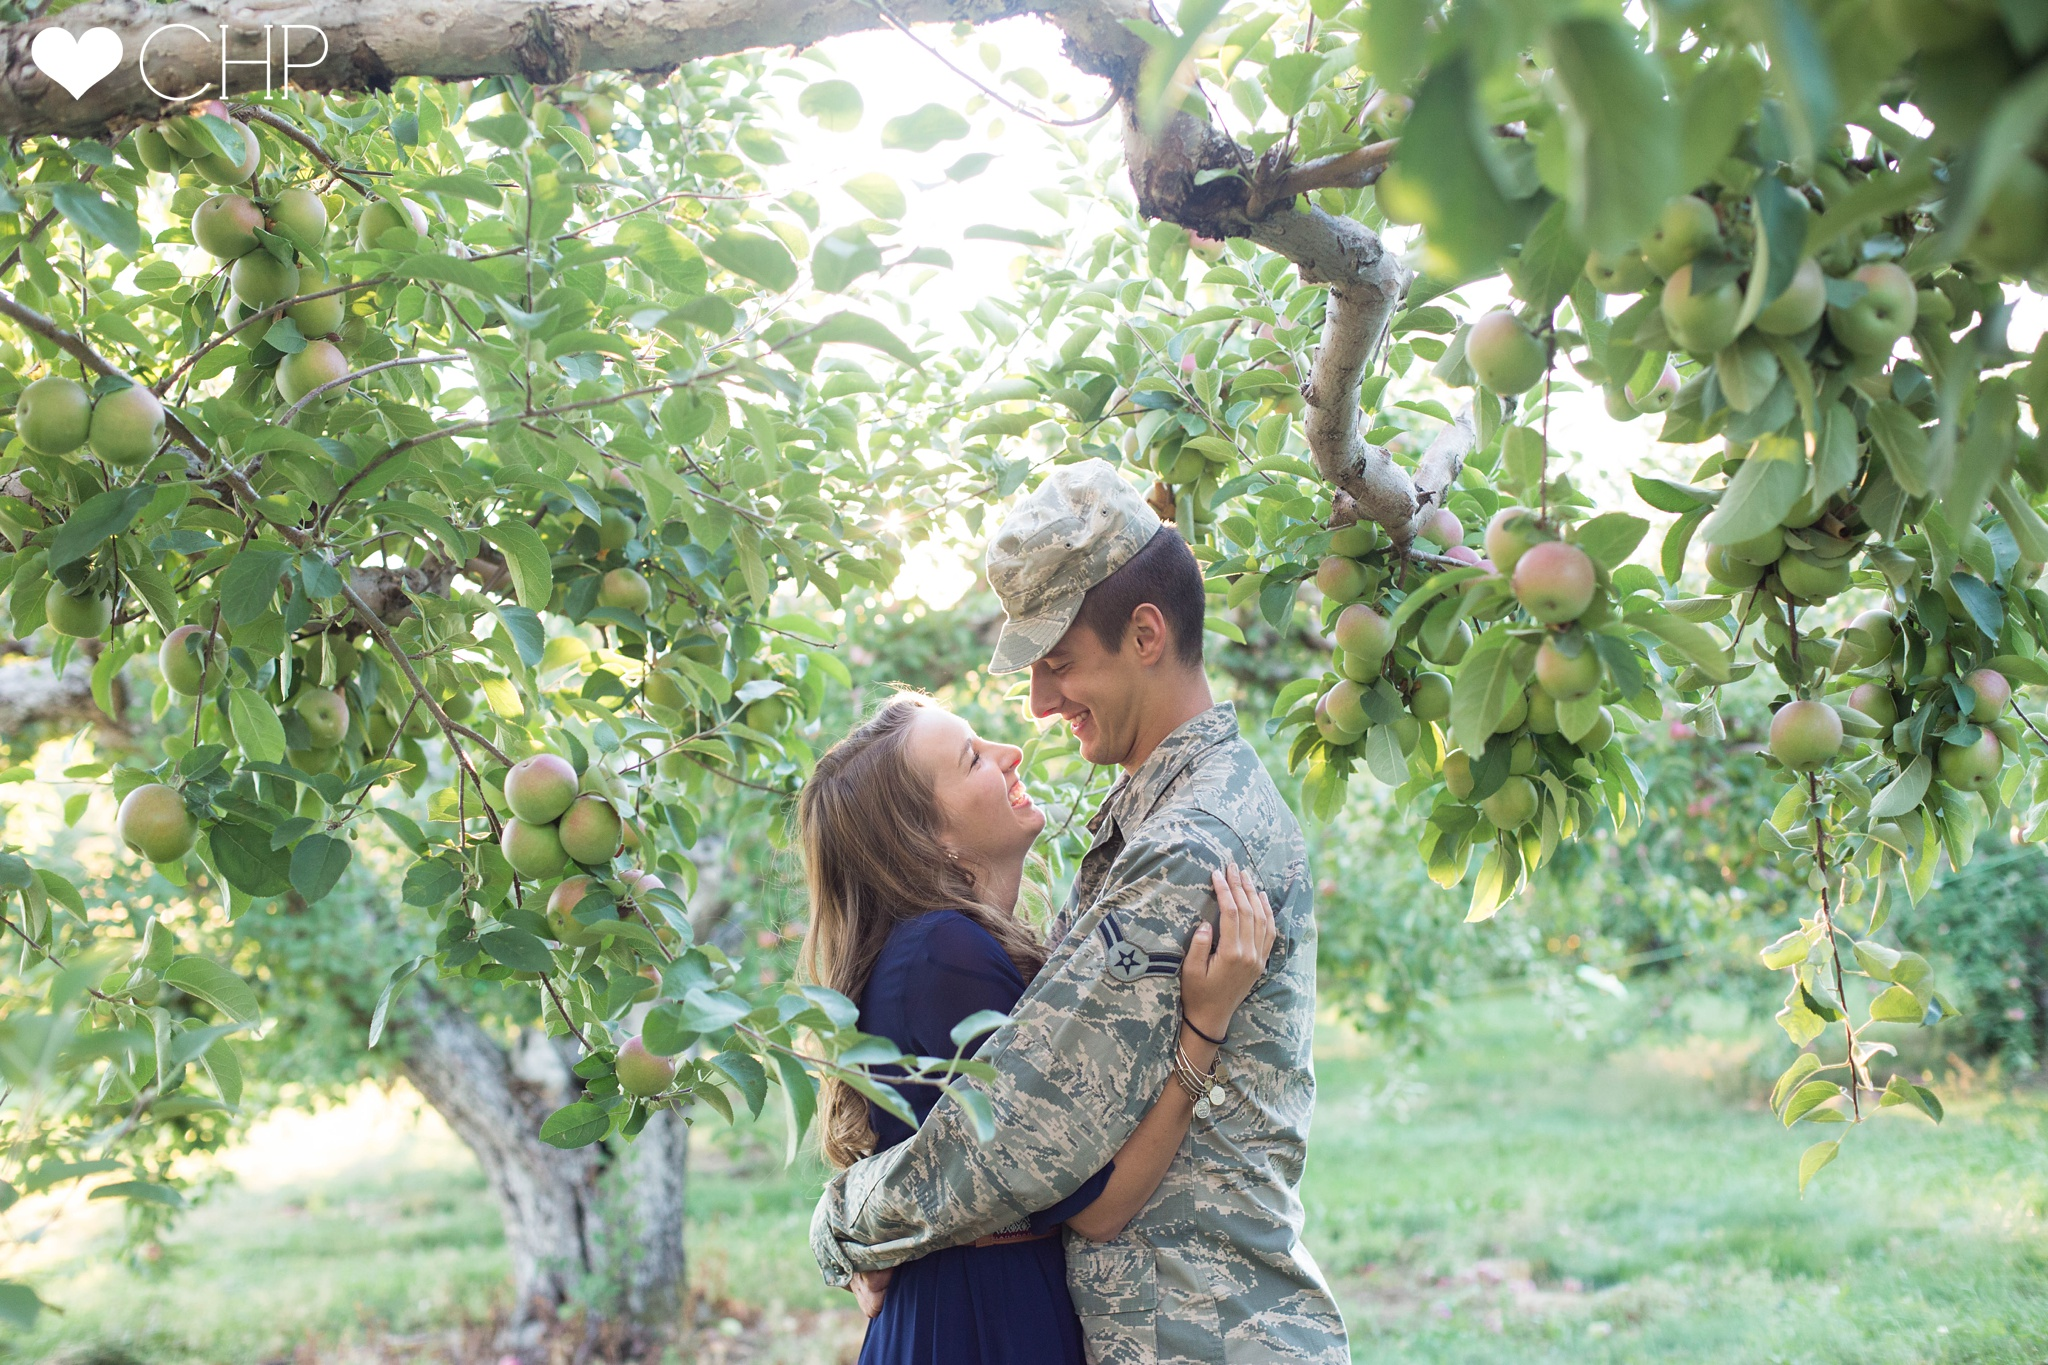 Engagement-Sessions-at-Conant-Apple-Orchards-in-Etna-Maine